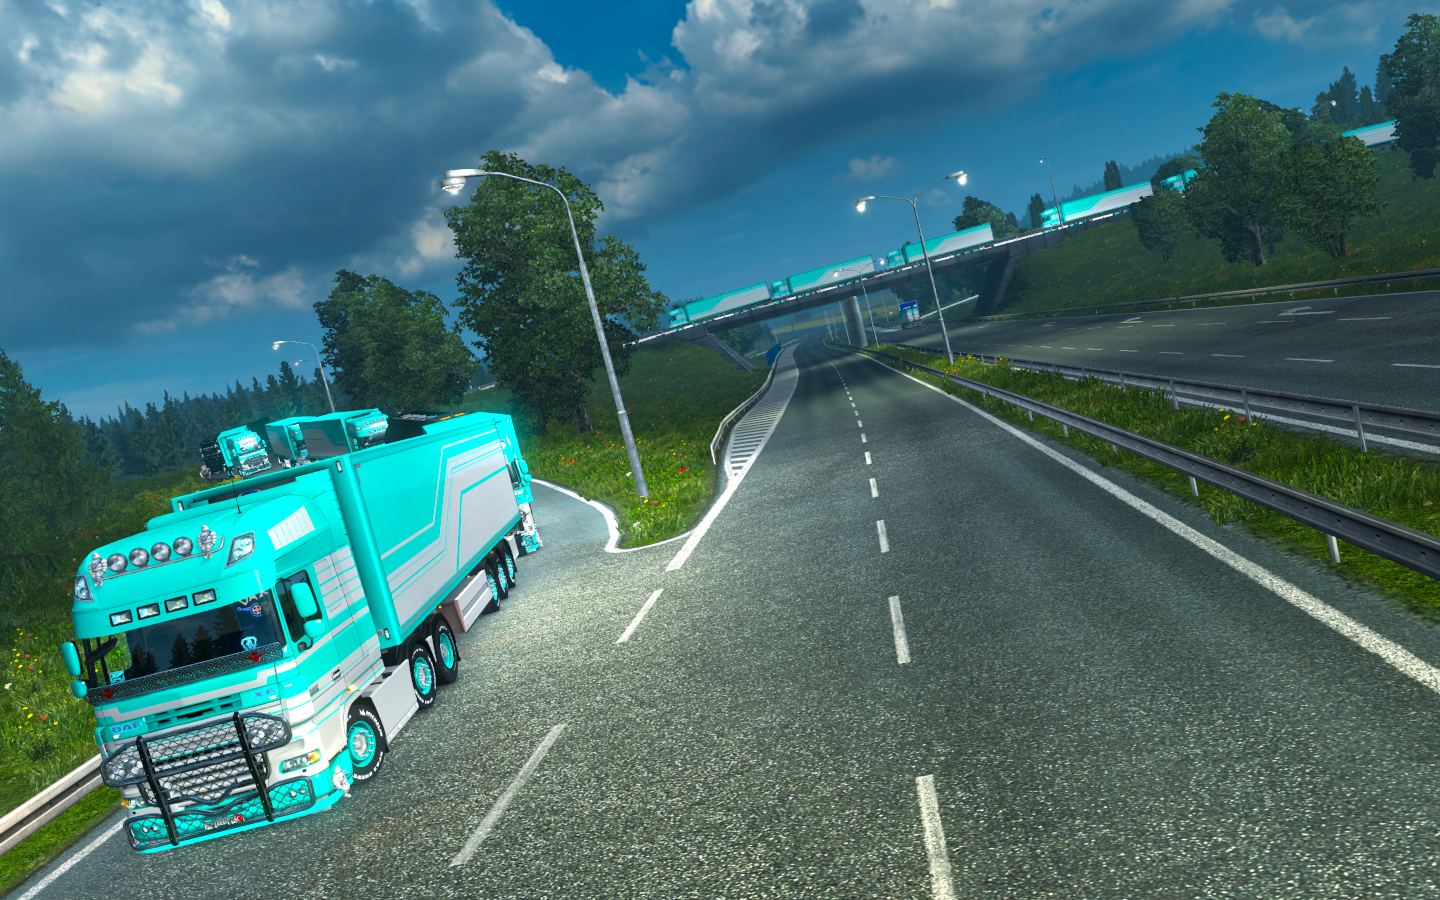 ets2_20190626_225738_00.png